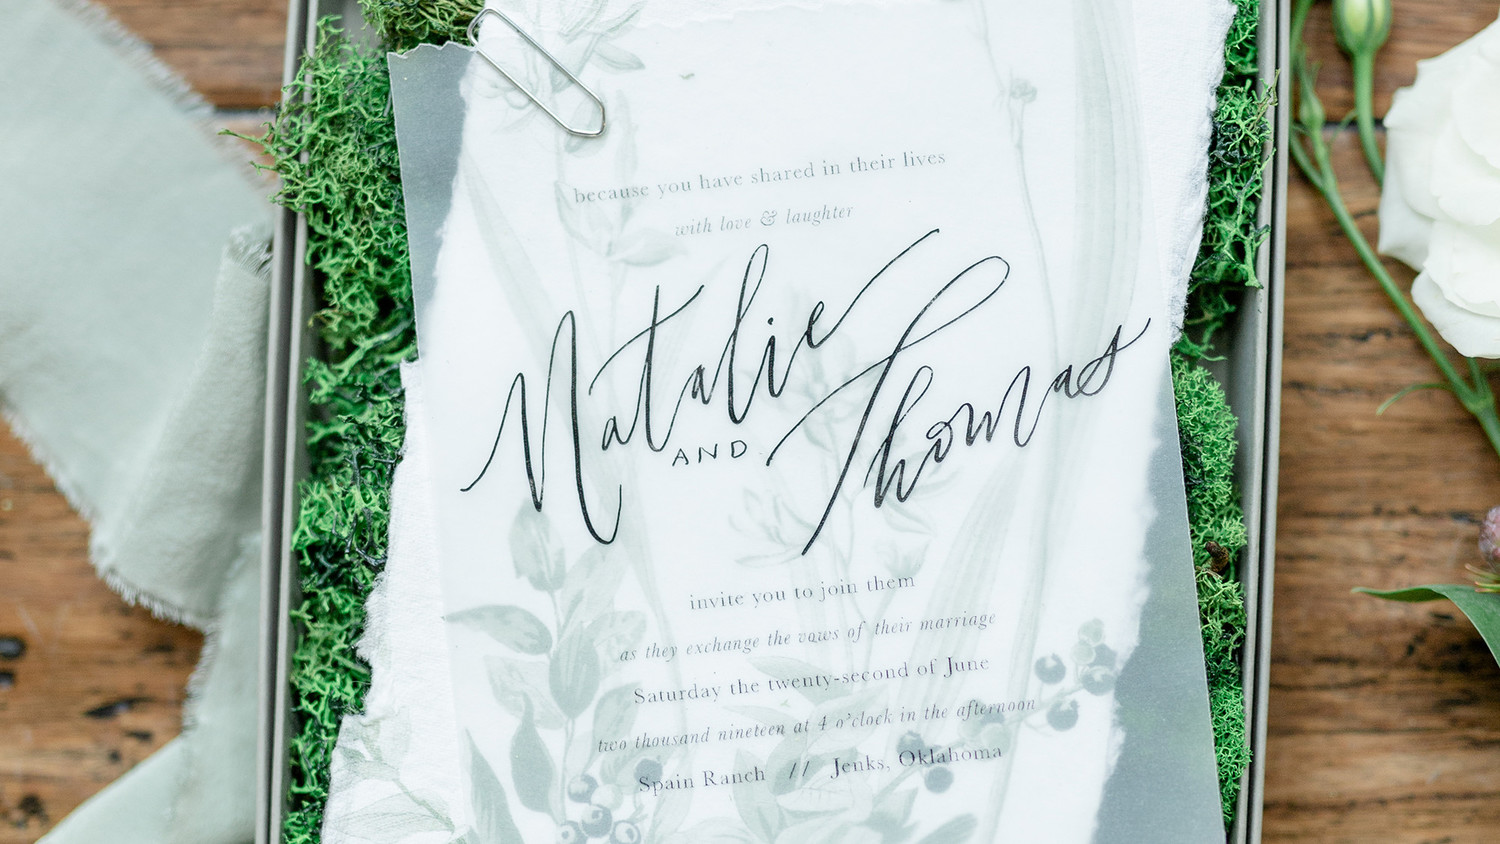 Martha Stewart Wedding Invitation: How To Tactfully Extend Wedding Invitations To Guests On